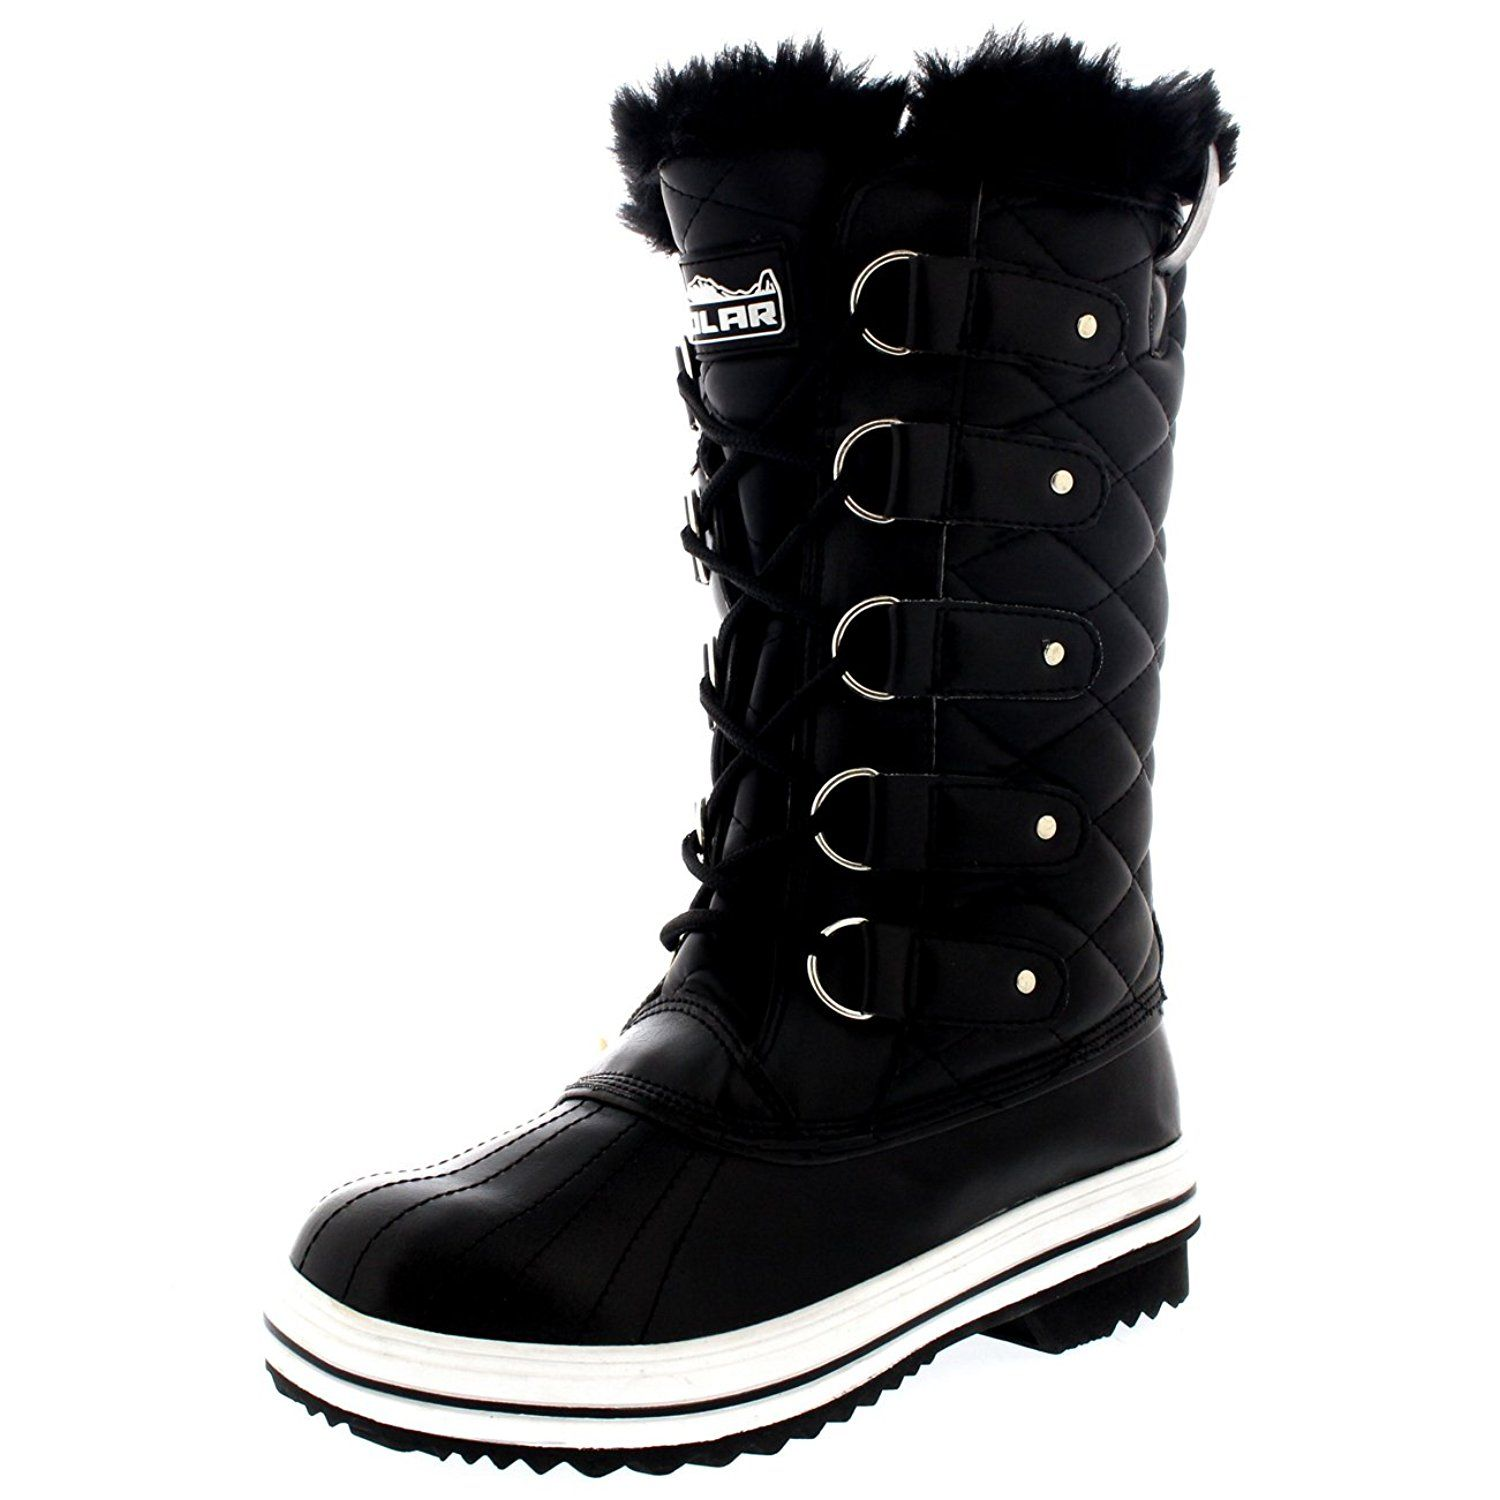 ddedefa89725 Buy St. John s Bay Cafferty Womens Winter Boots at JCPenney.com today and  enjoy great savings.